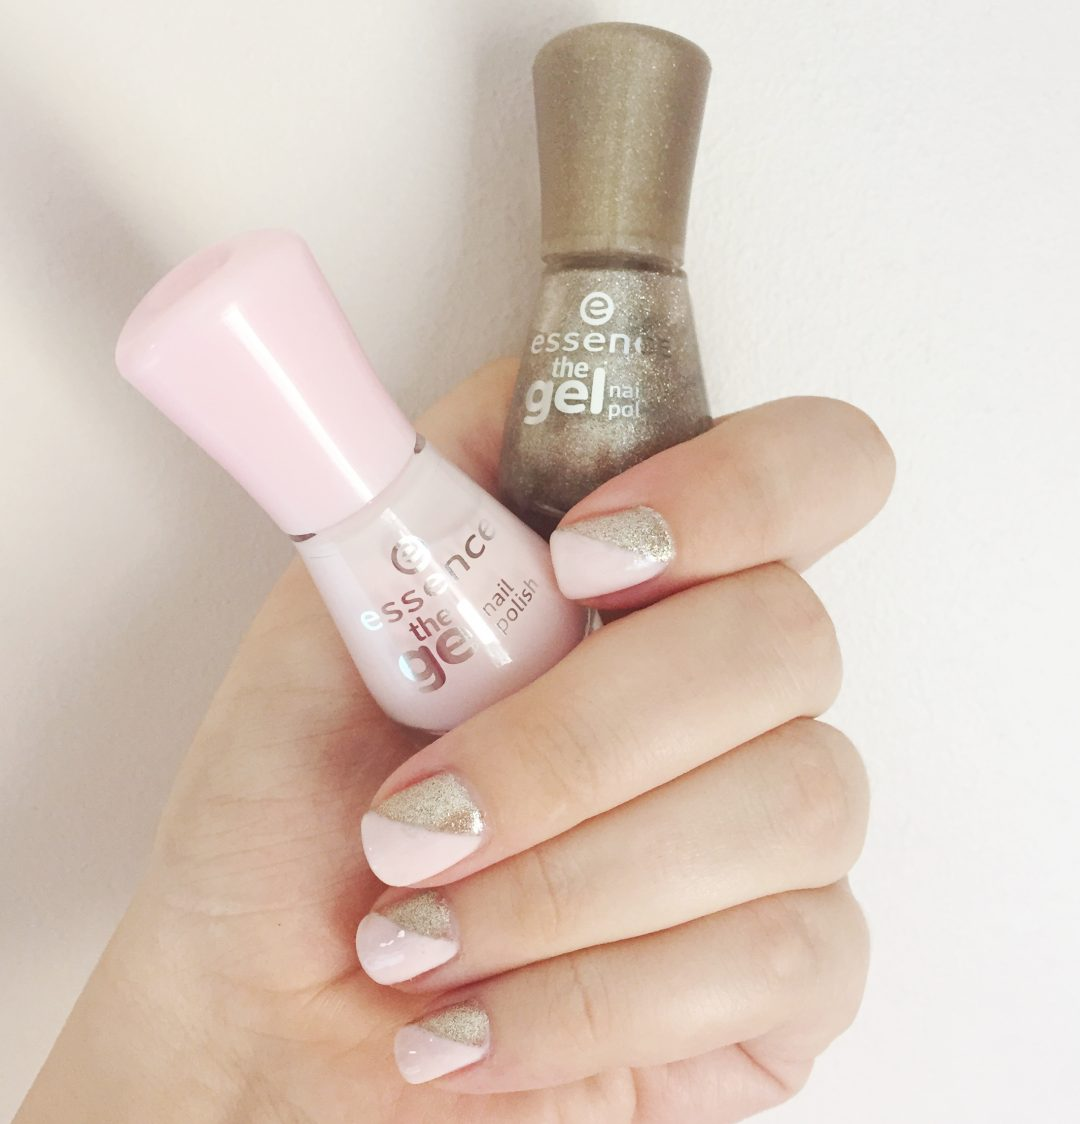 easy nail art with Essence nail polishes